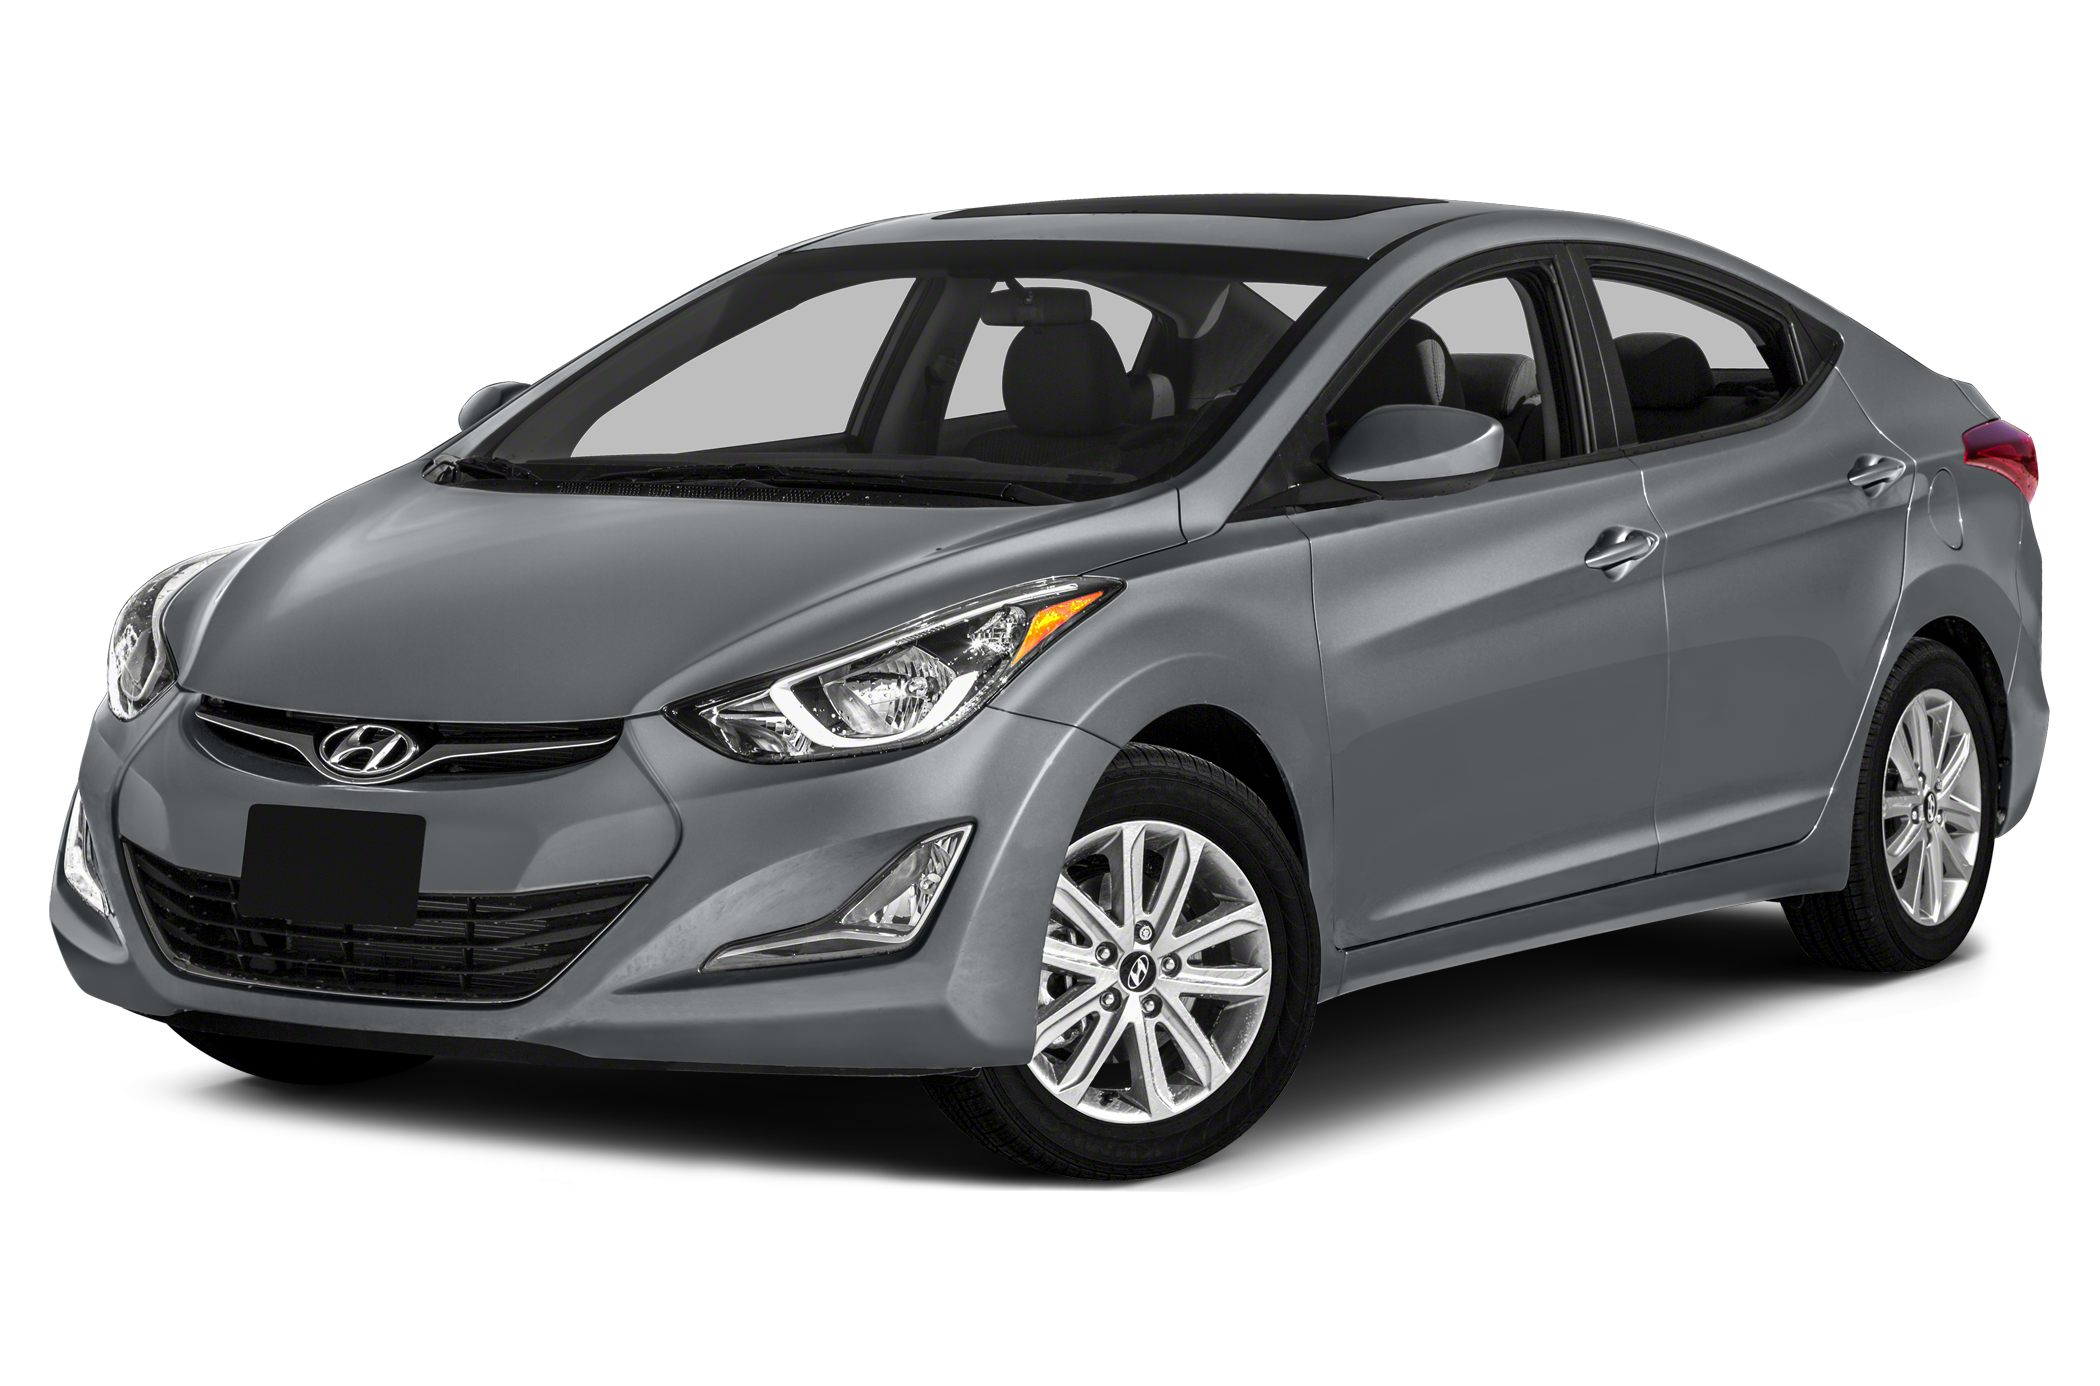 2015 Hyundai Elantra SE Price includes 500 - Summer Sales Cash Exp 0706 2250 - Retail Bonu